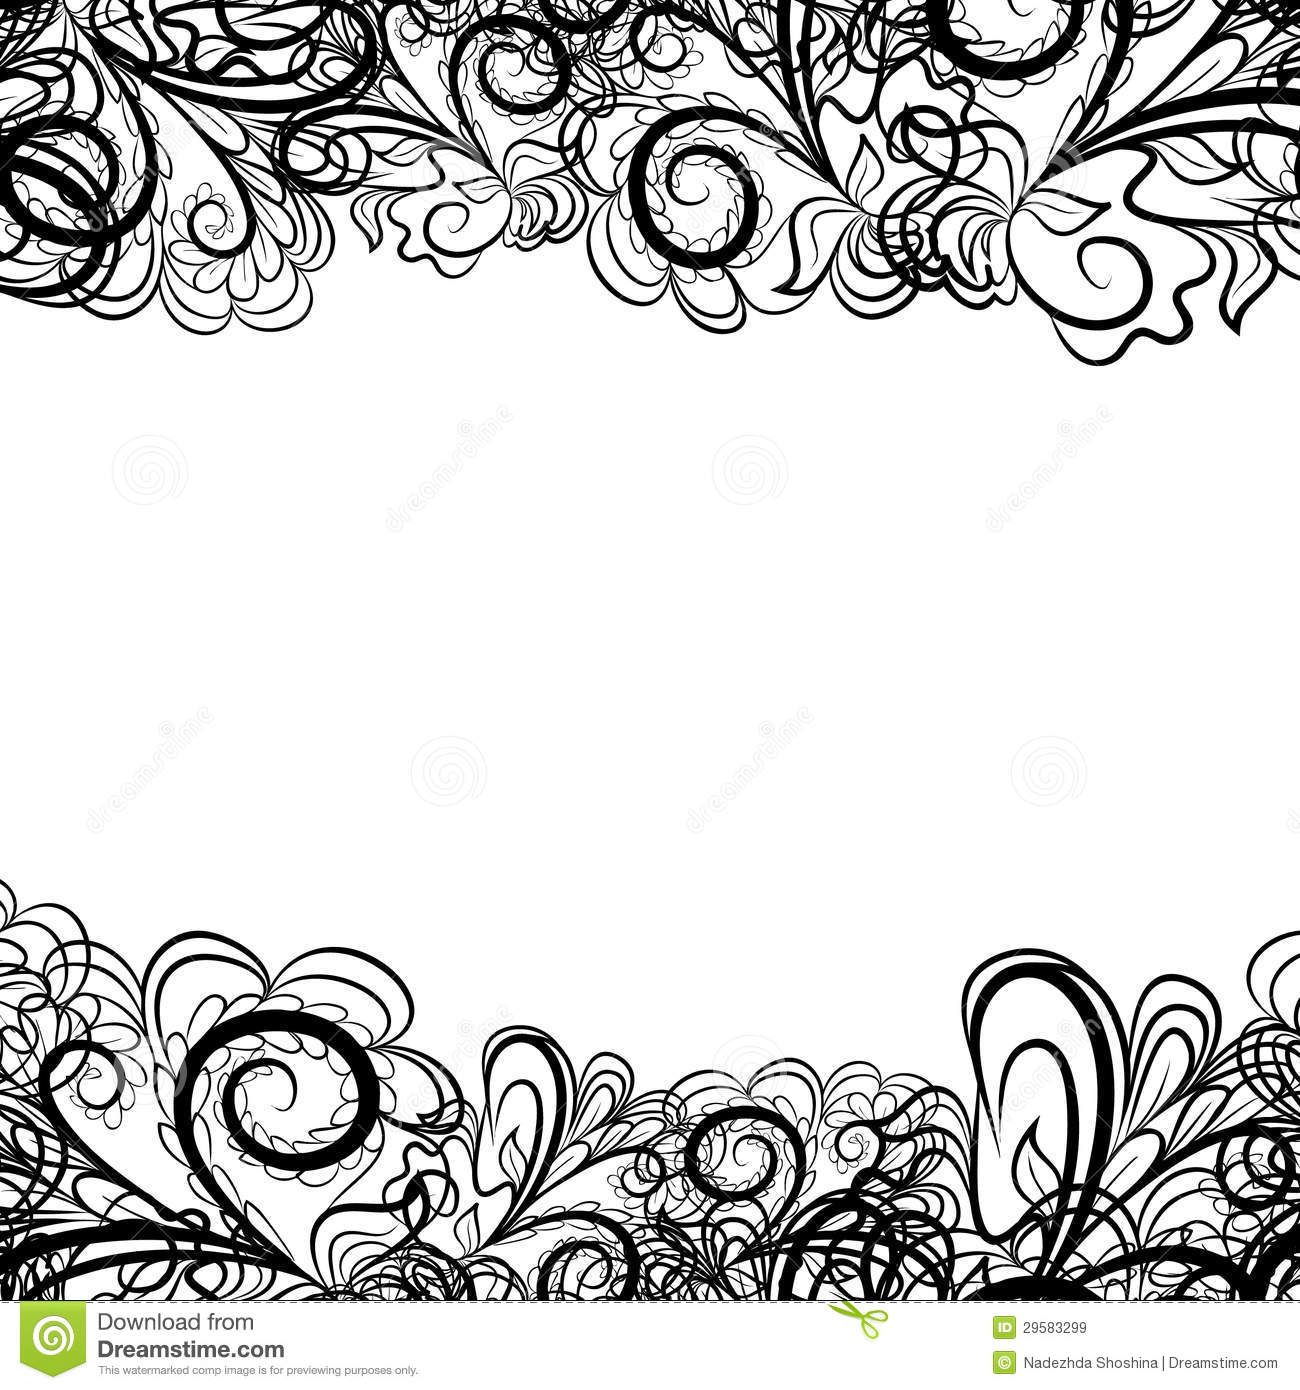 Lace clipart paisley border. Free download best on